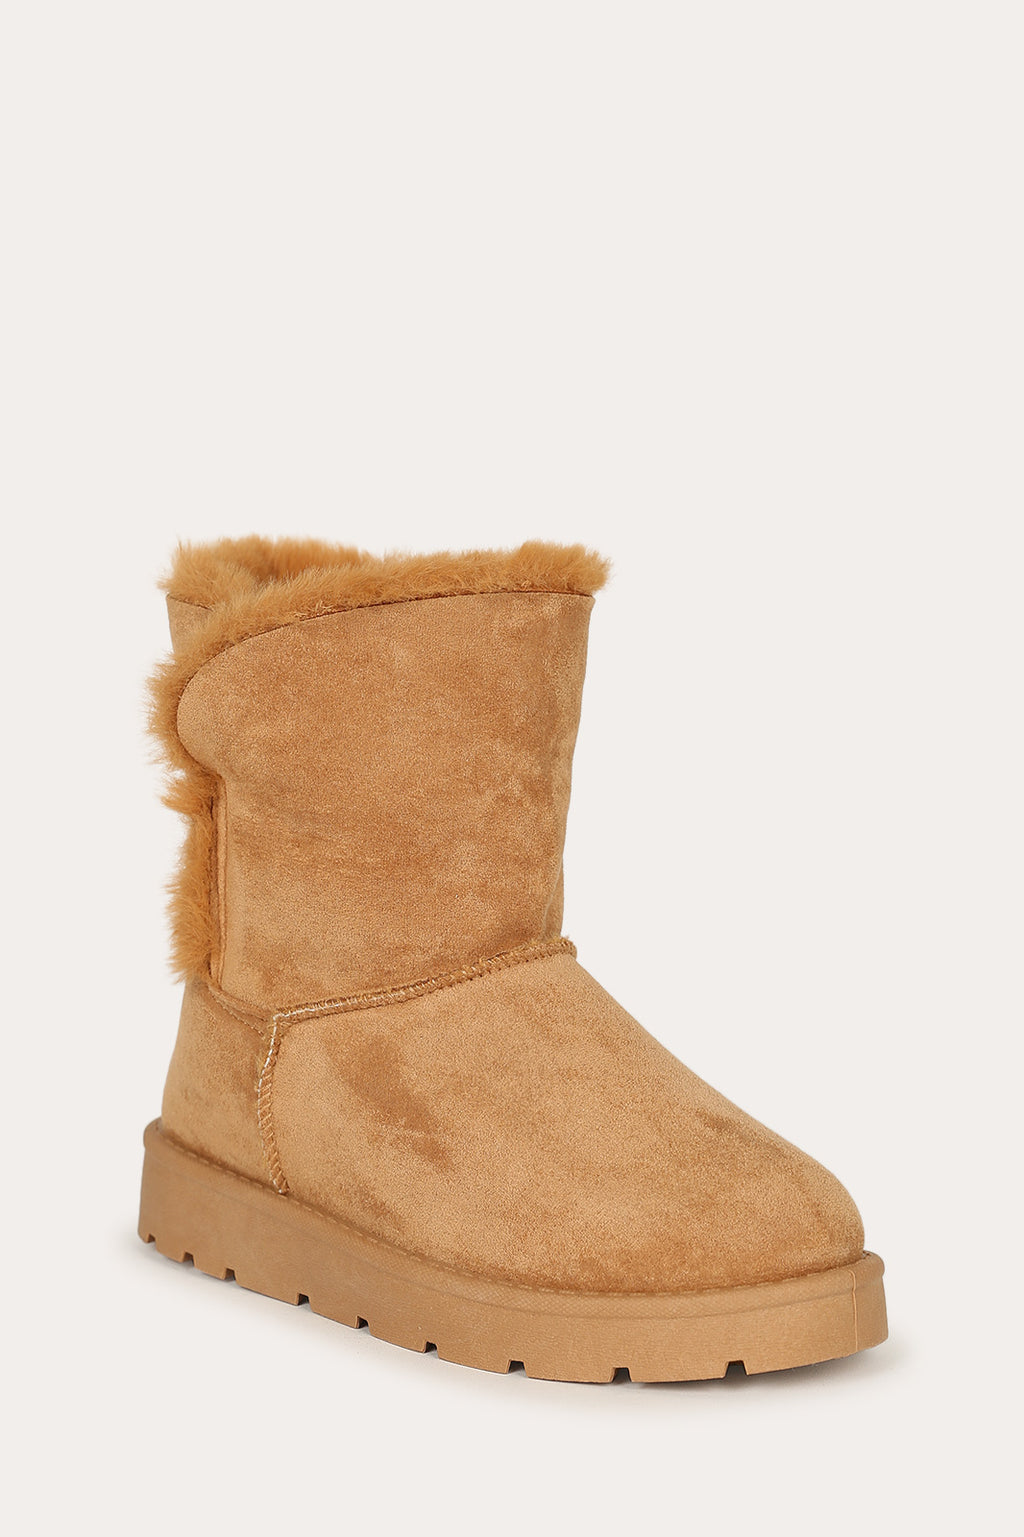 Bamboo Frozen-23 Tan Short Boot Lined With Fur